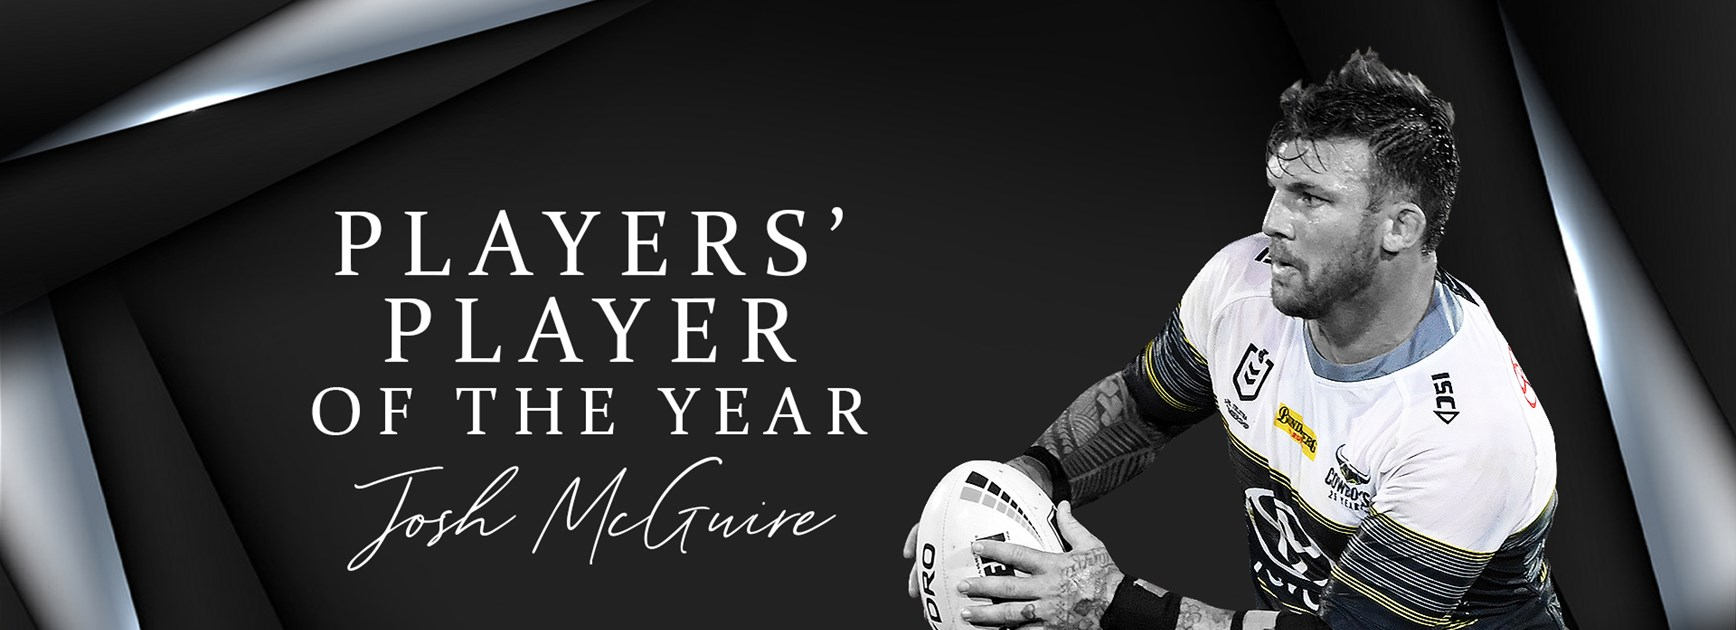 McGuire named Players' Player